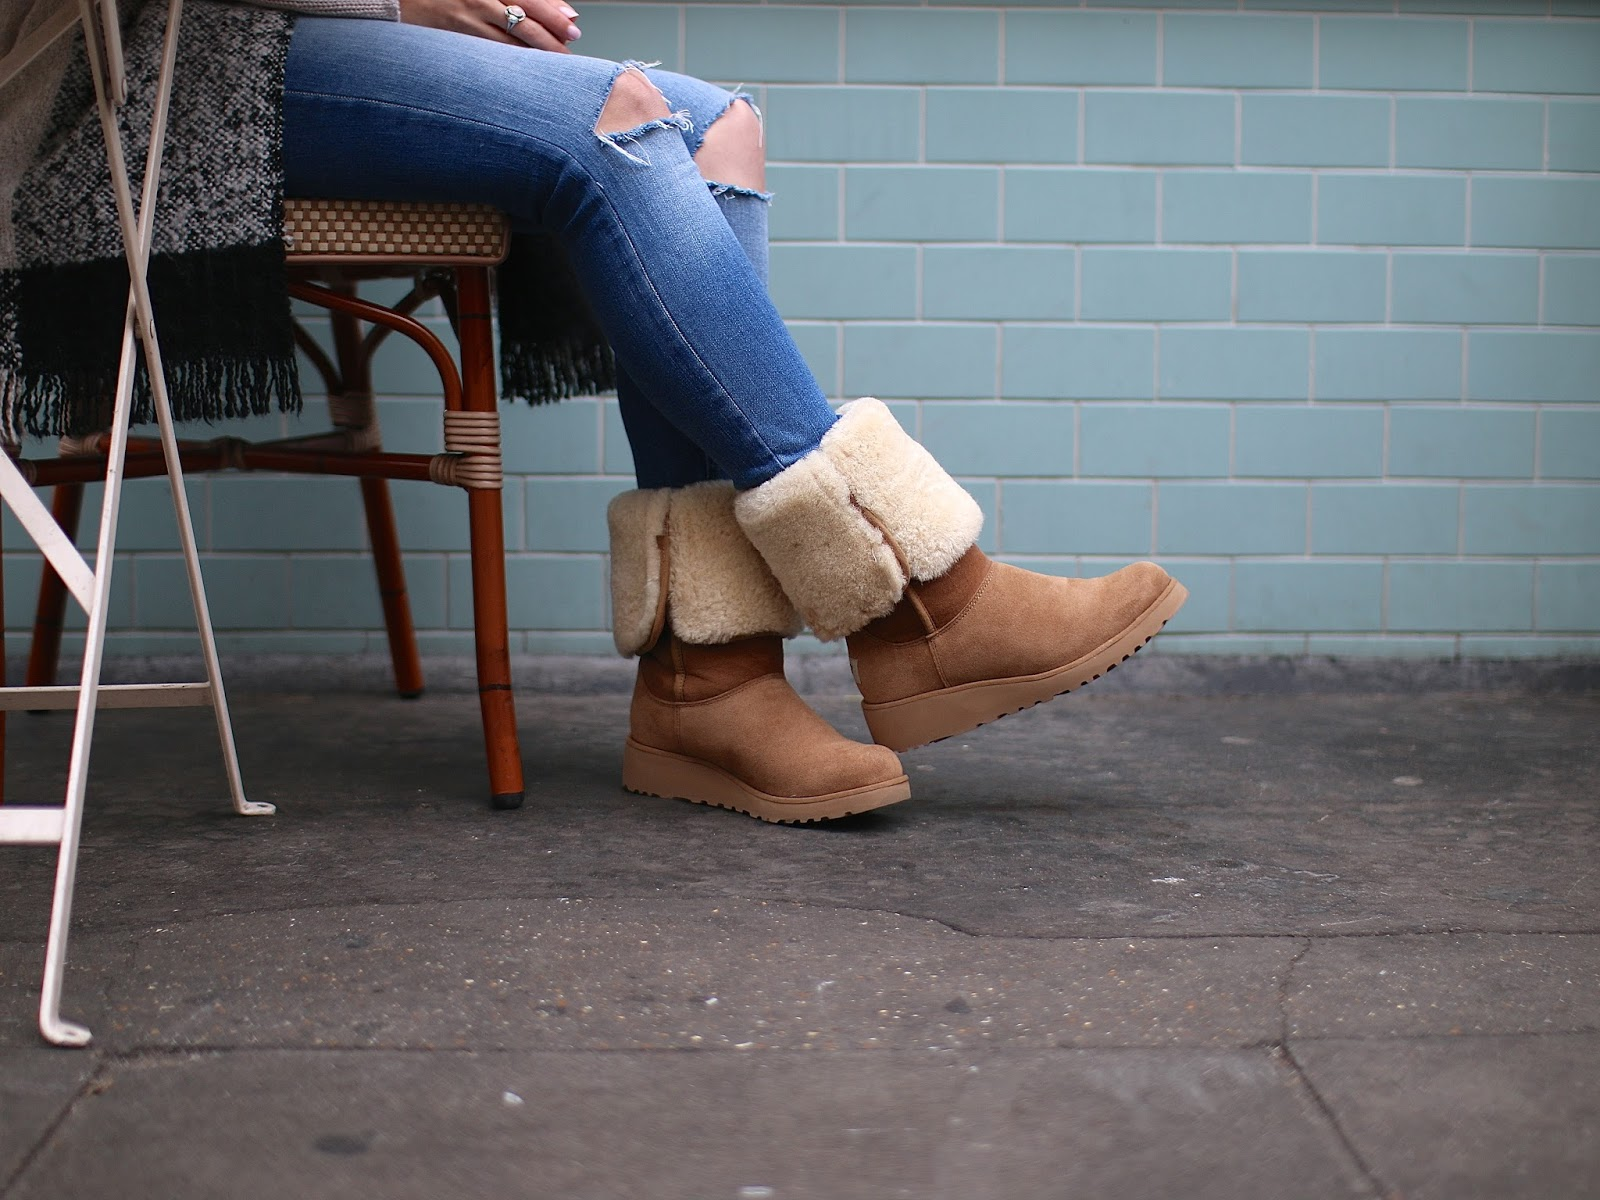 warm and fuzzy ugg boots are perfect for walking around london in the fall